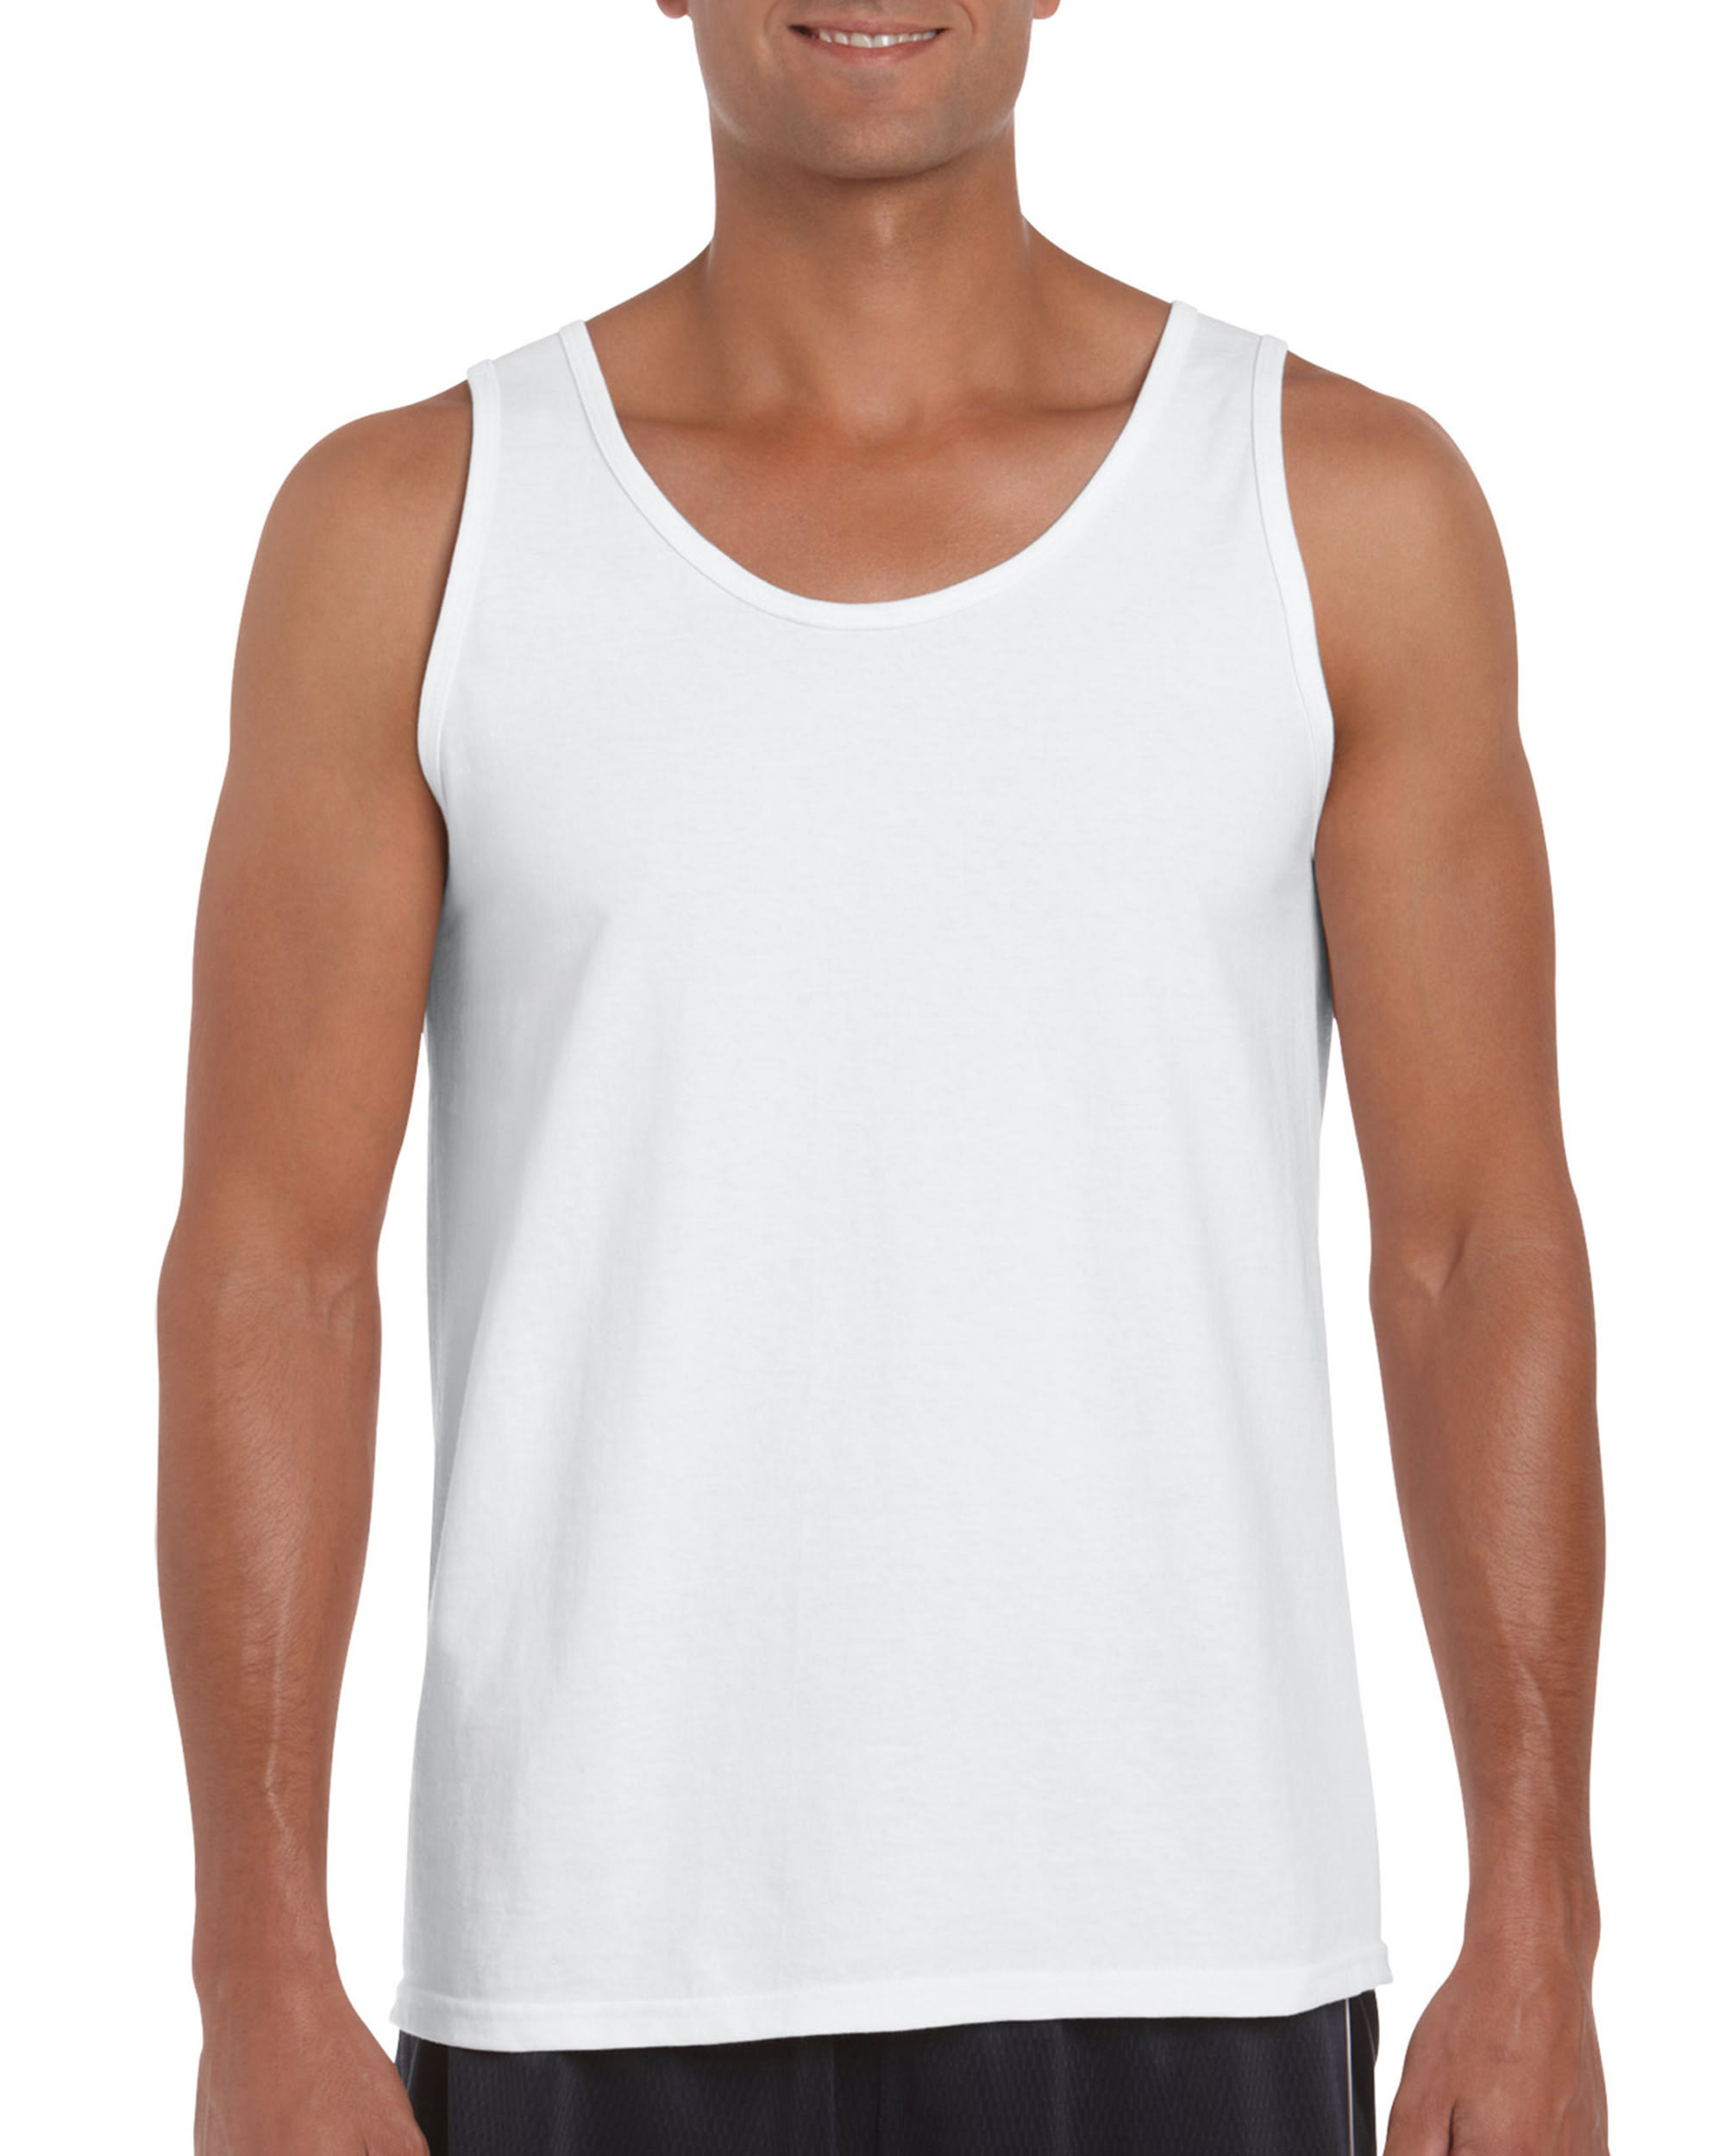 new product c3b84 ecf72 Custom Printed Tank Tops and Sleeveless - Coastal Reign